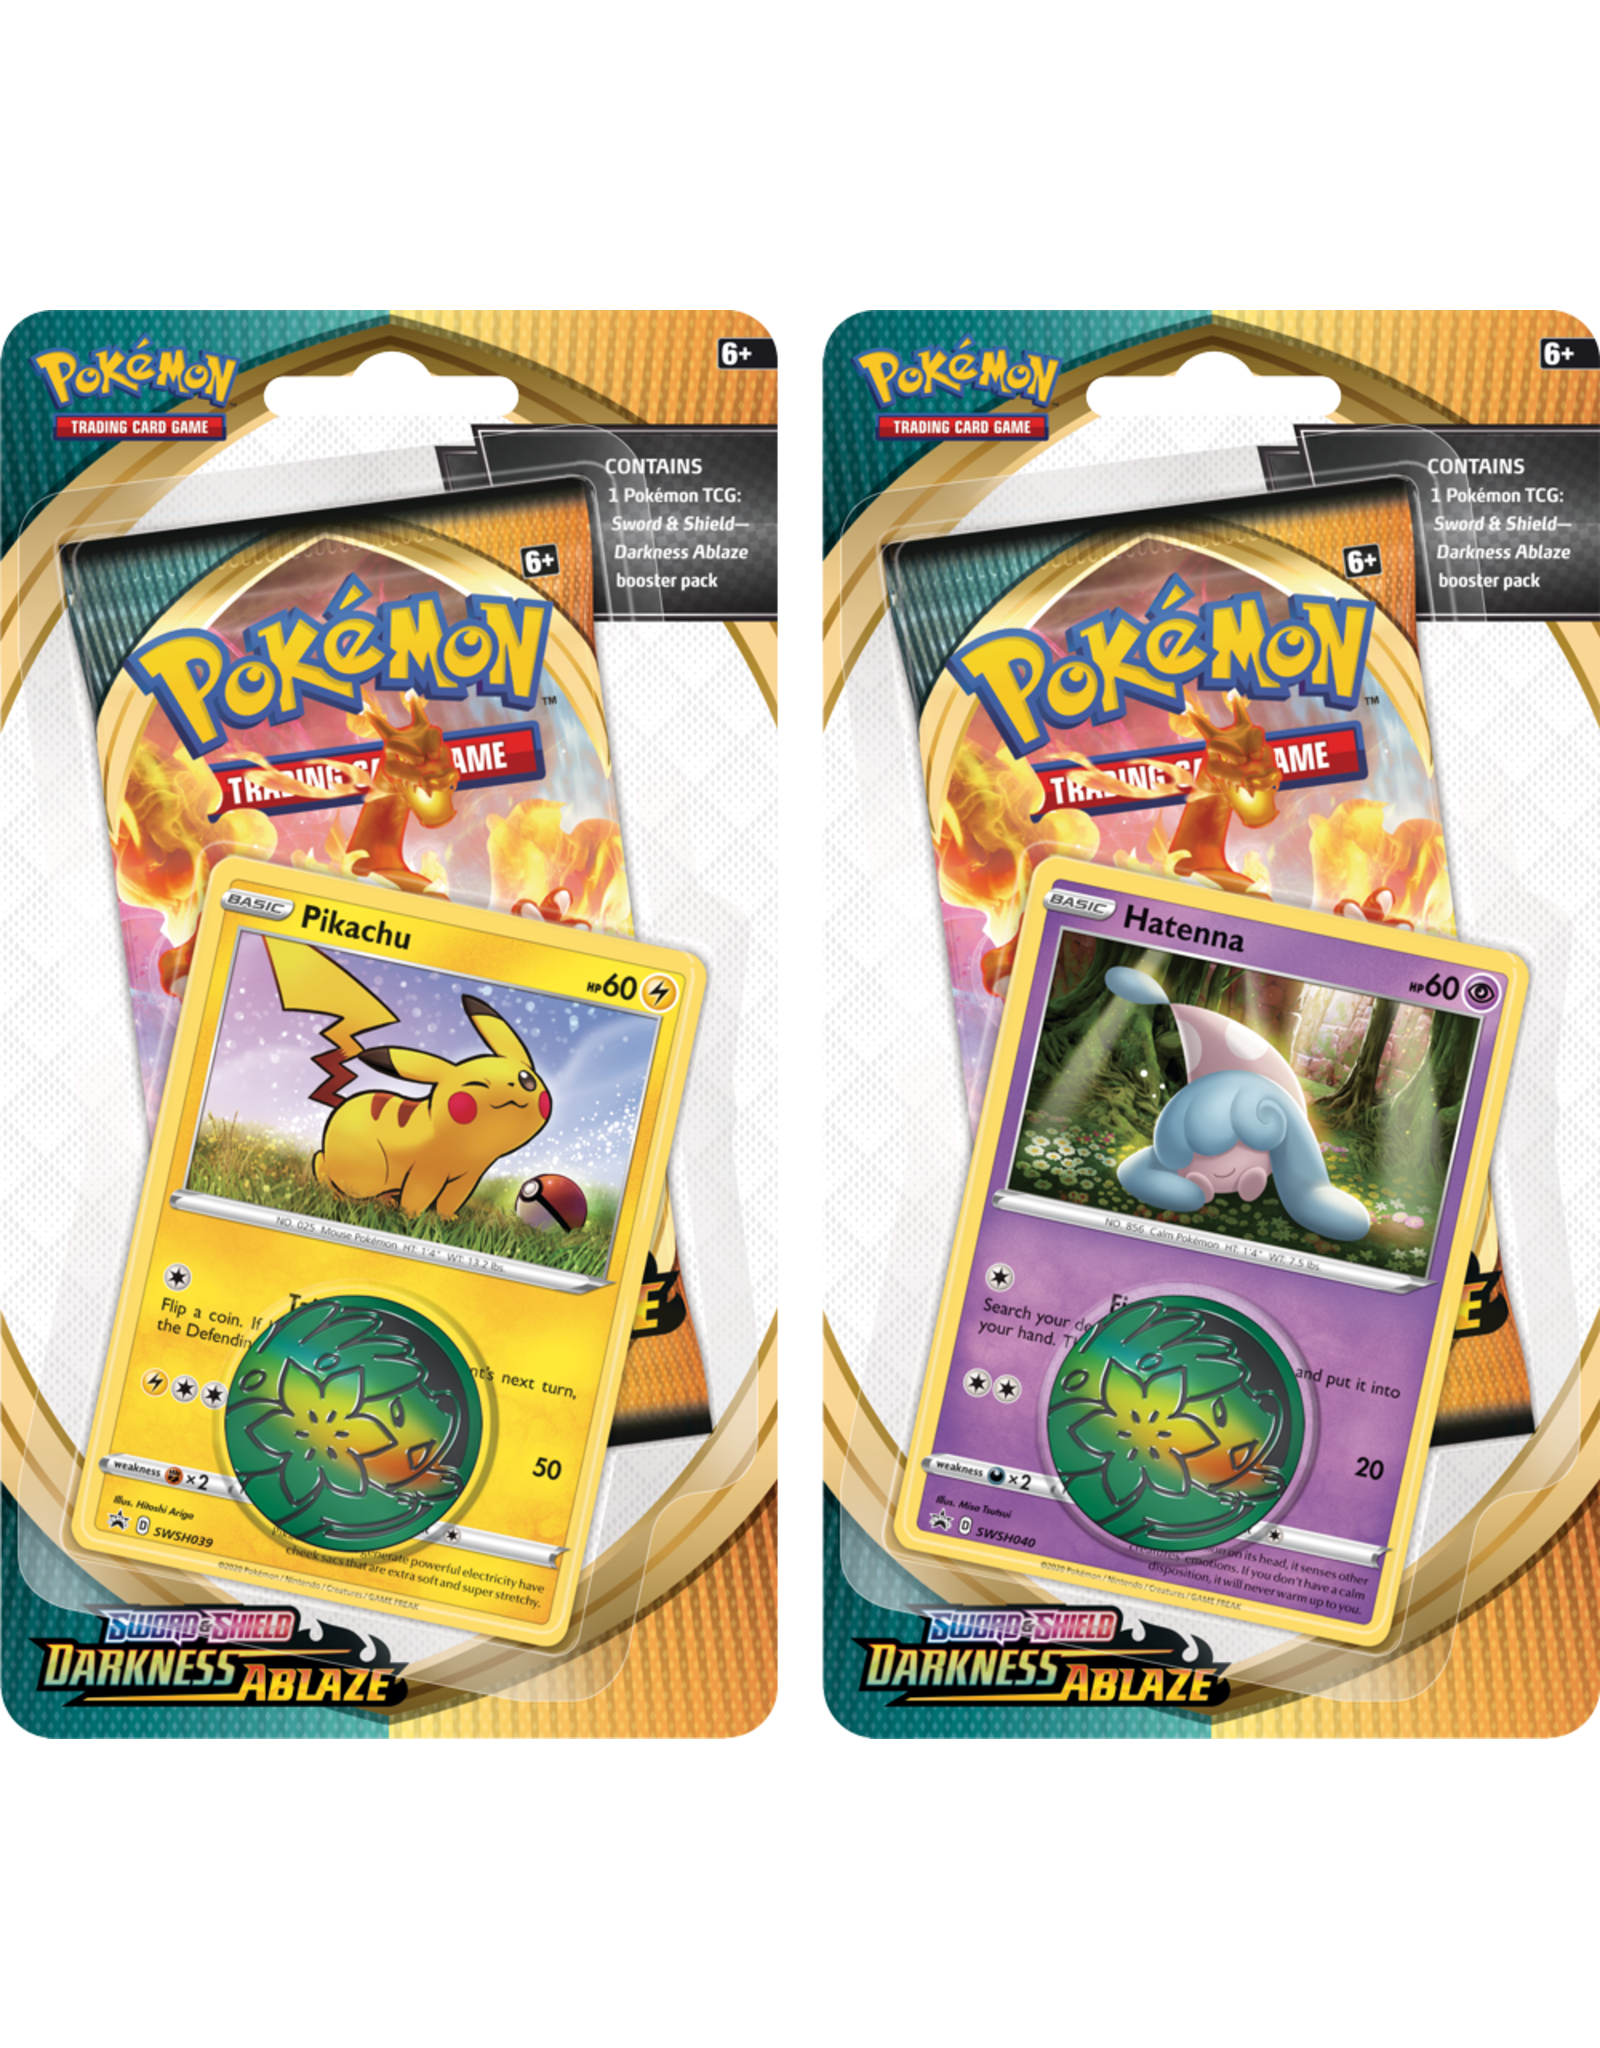 Pokemon Pokemon Darkness Ablaze Check Lane Booster